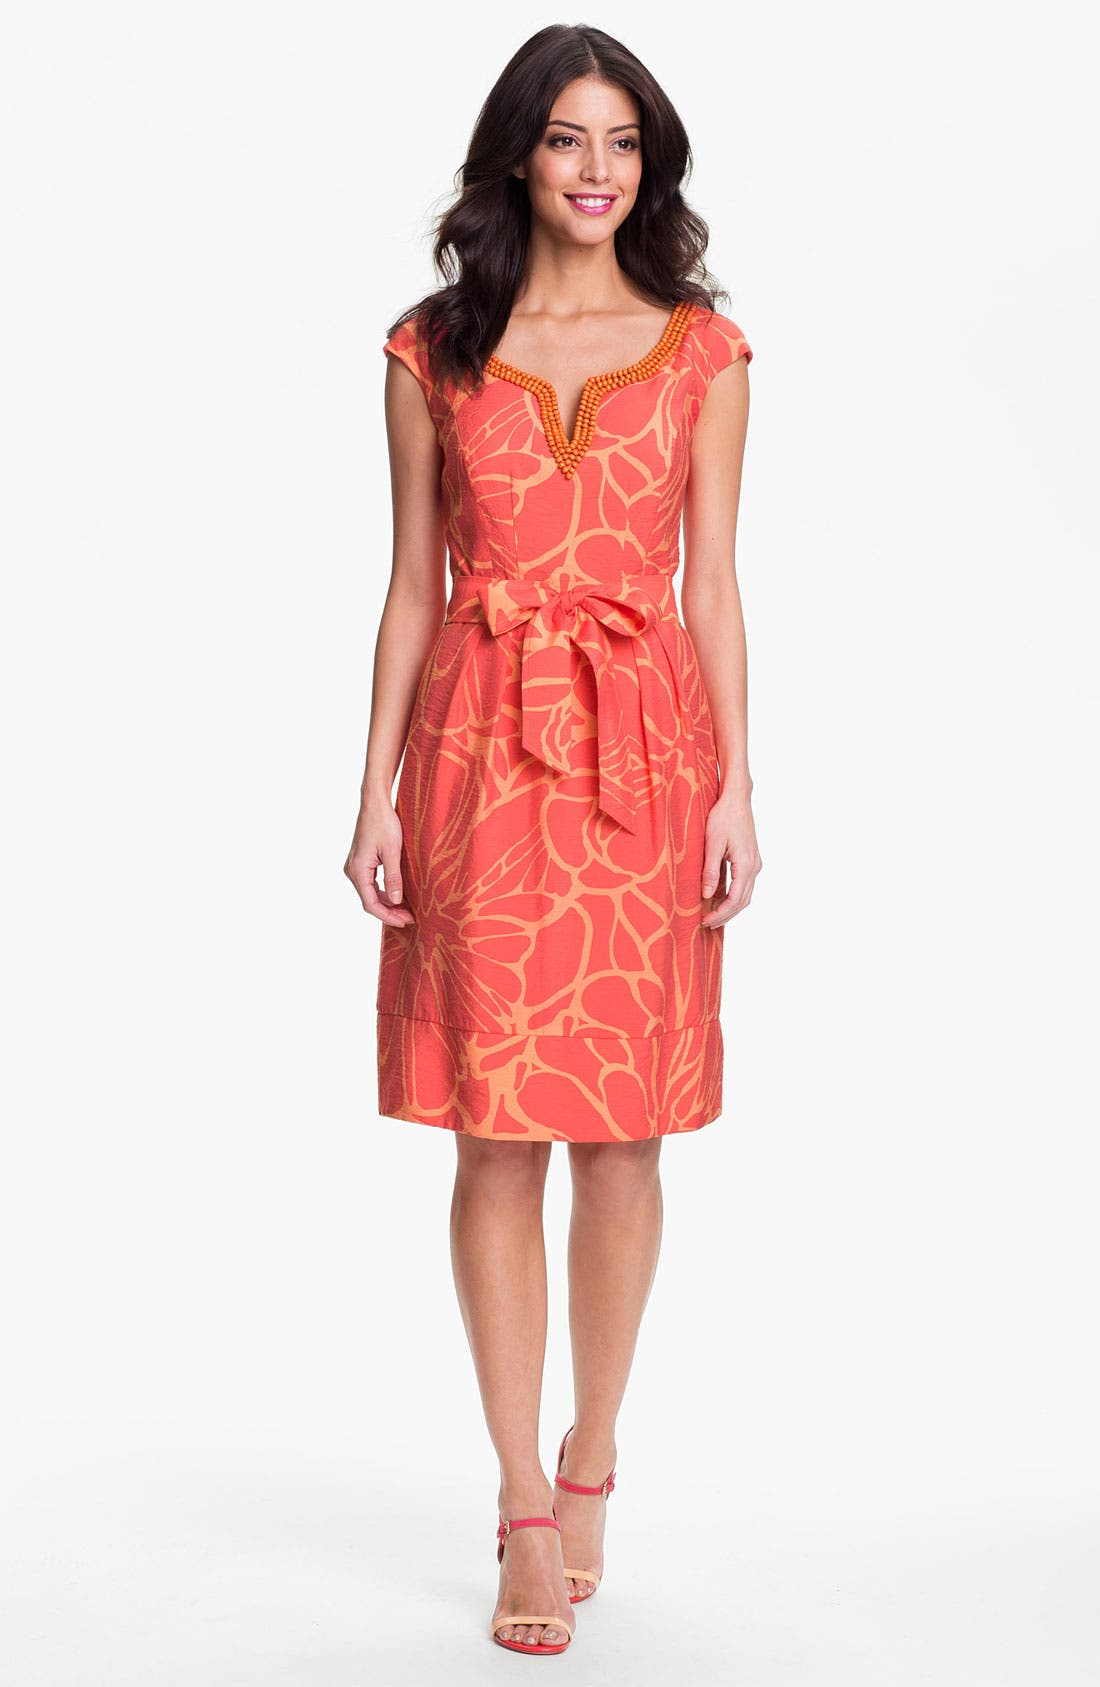 Main Image - Adrianna Papell Embellished Print Dress